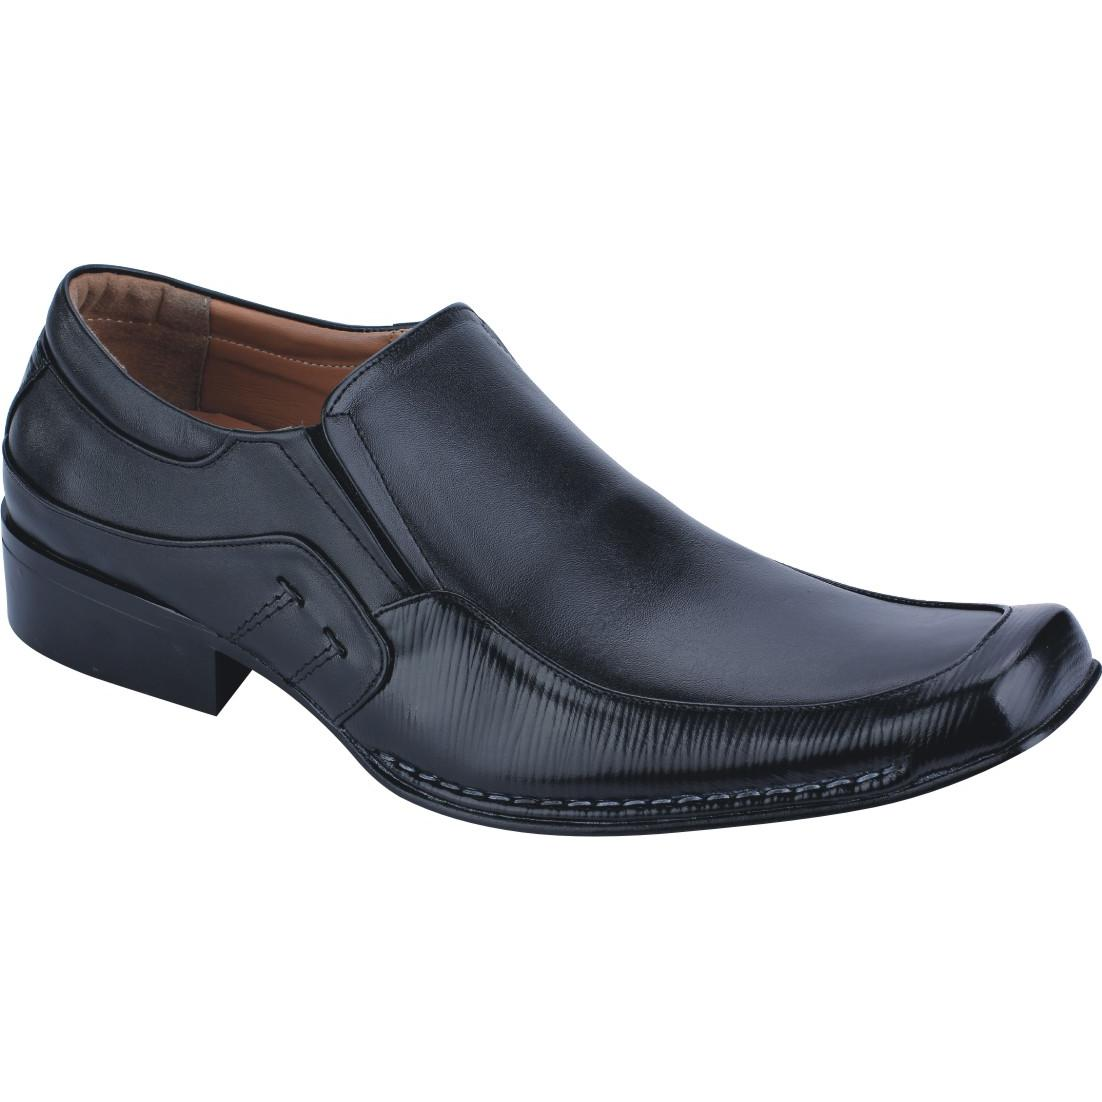 Buy Formal Shoes Collection Deals For Only Rp190000 Instead Of Sepatu Pantovel Hells Um 09 Black Catenzo Pantofel Slip On Hard Brown